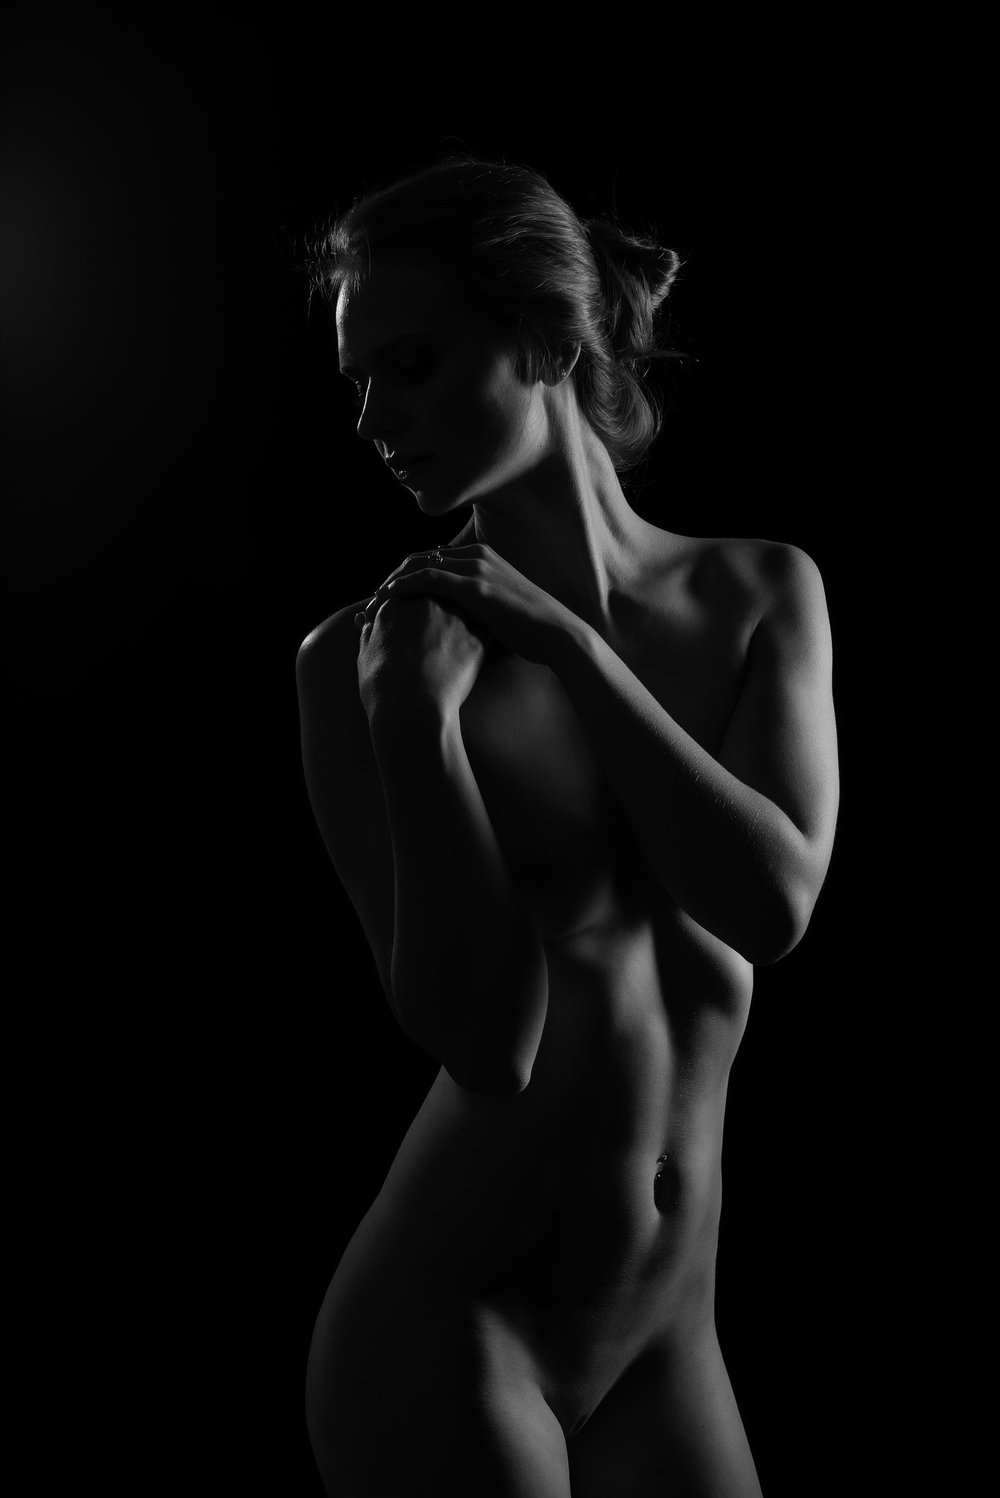 Silhouette of fit woman Fitness photographer